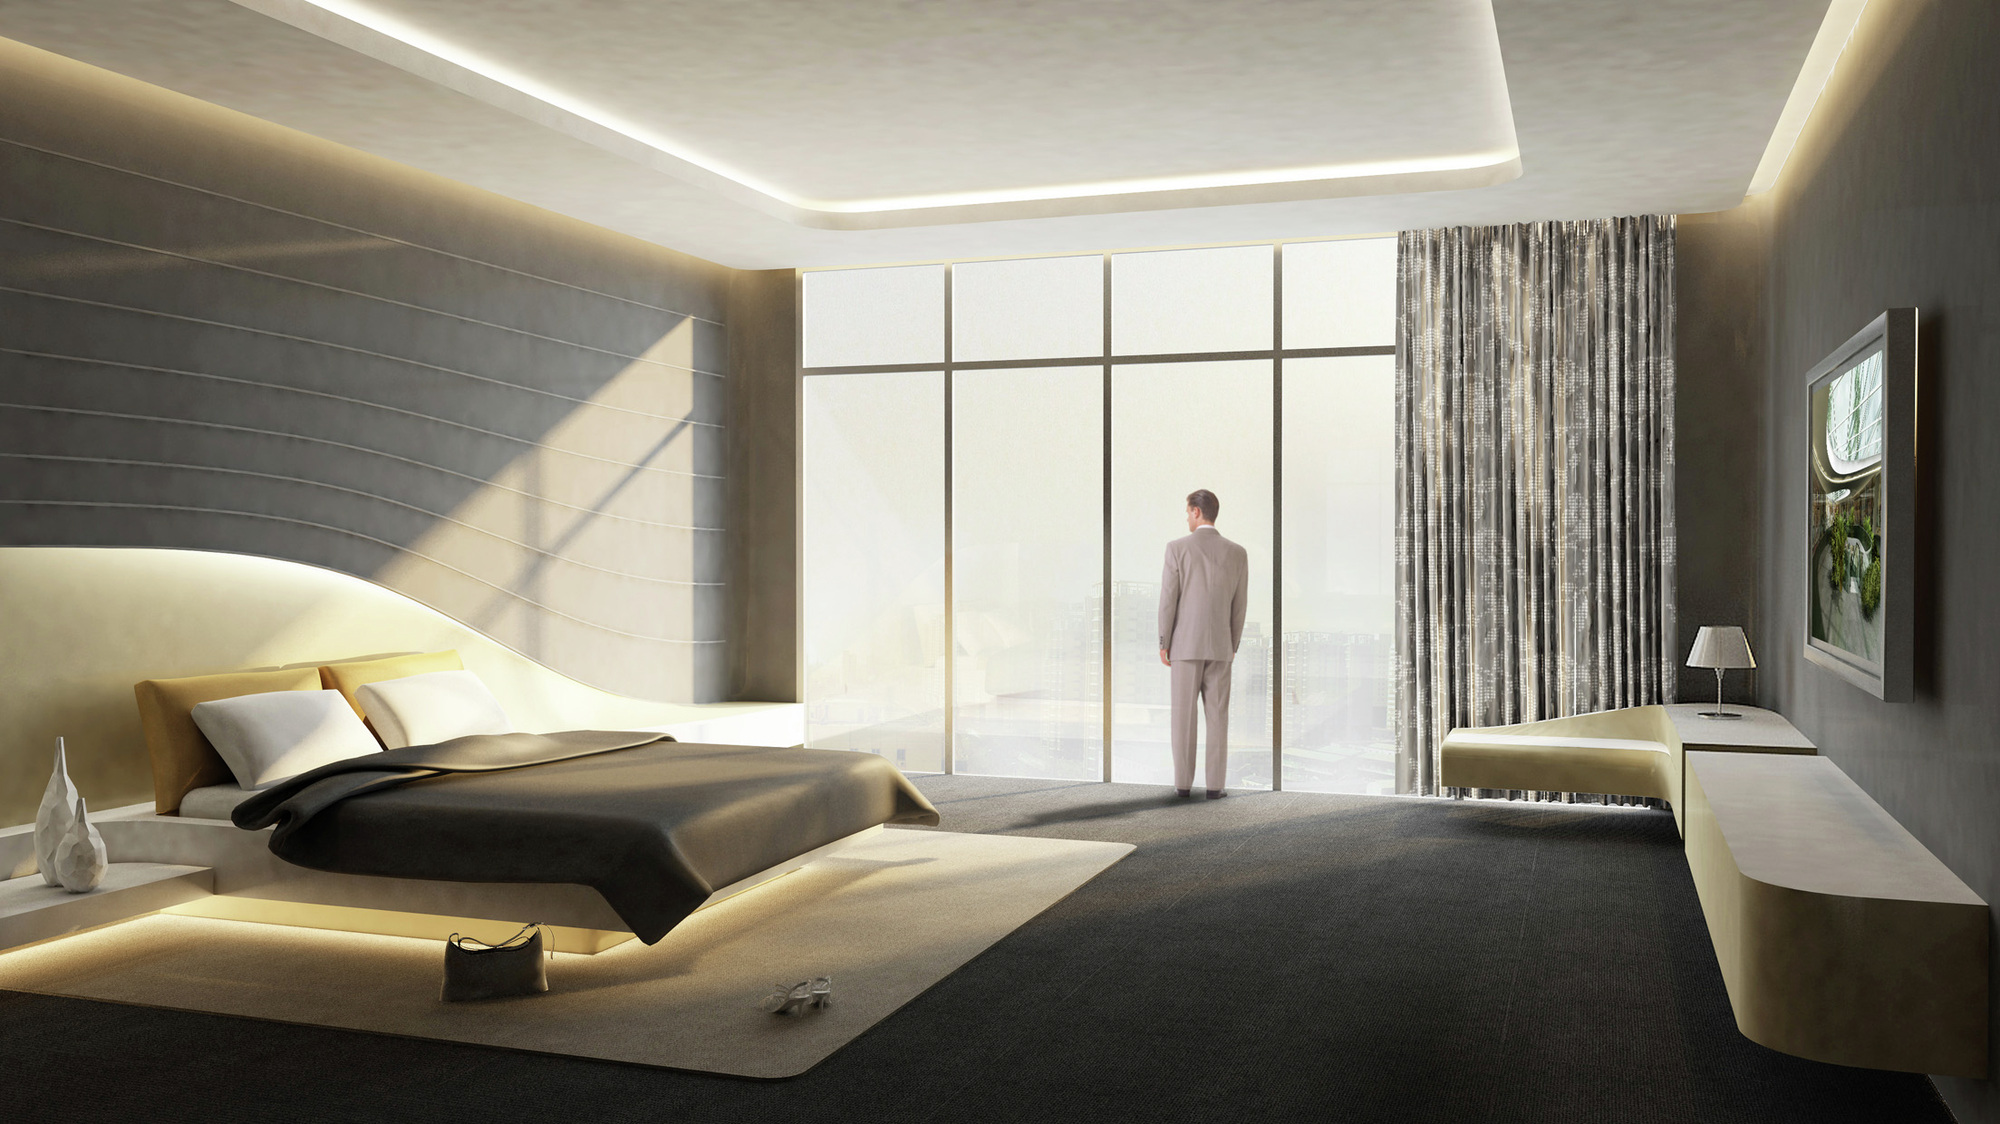 Gallery of south west hotel competition proposal henn for Design hotel f 6 genf